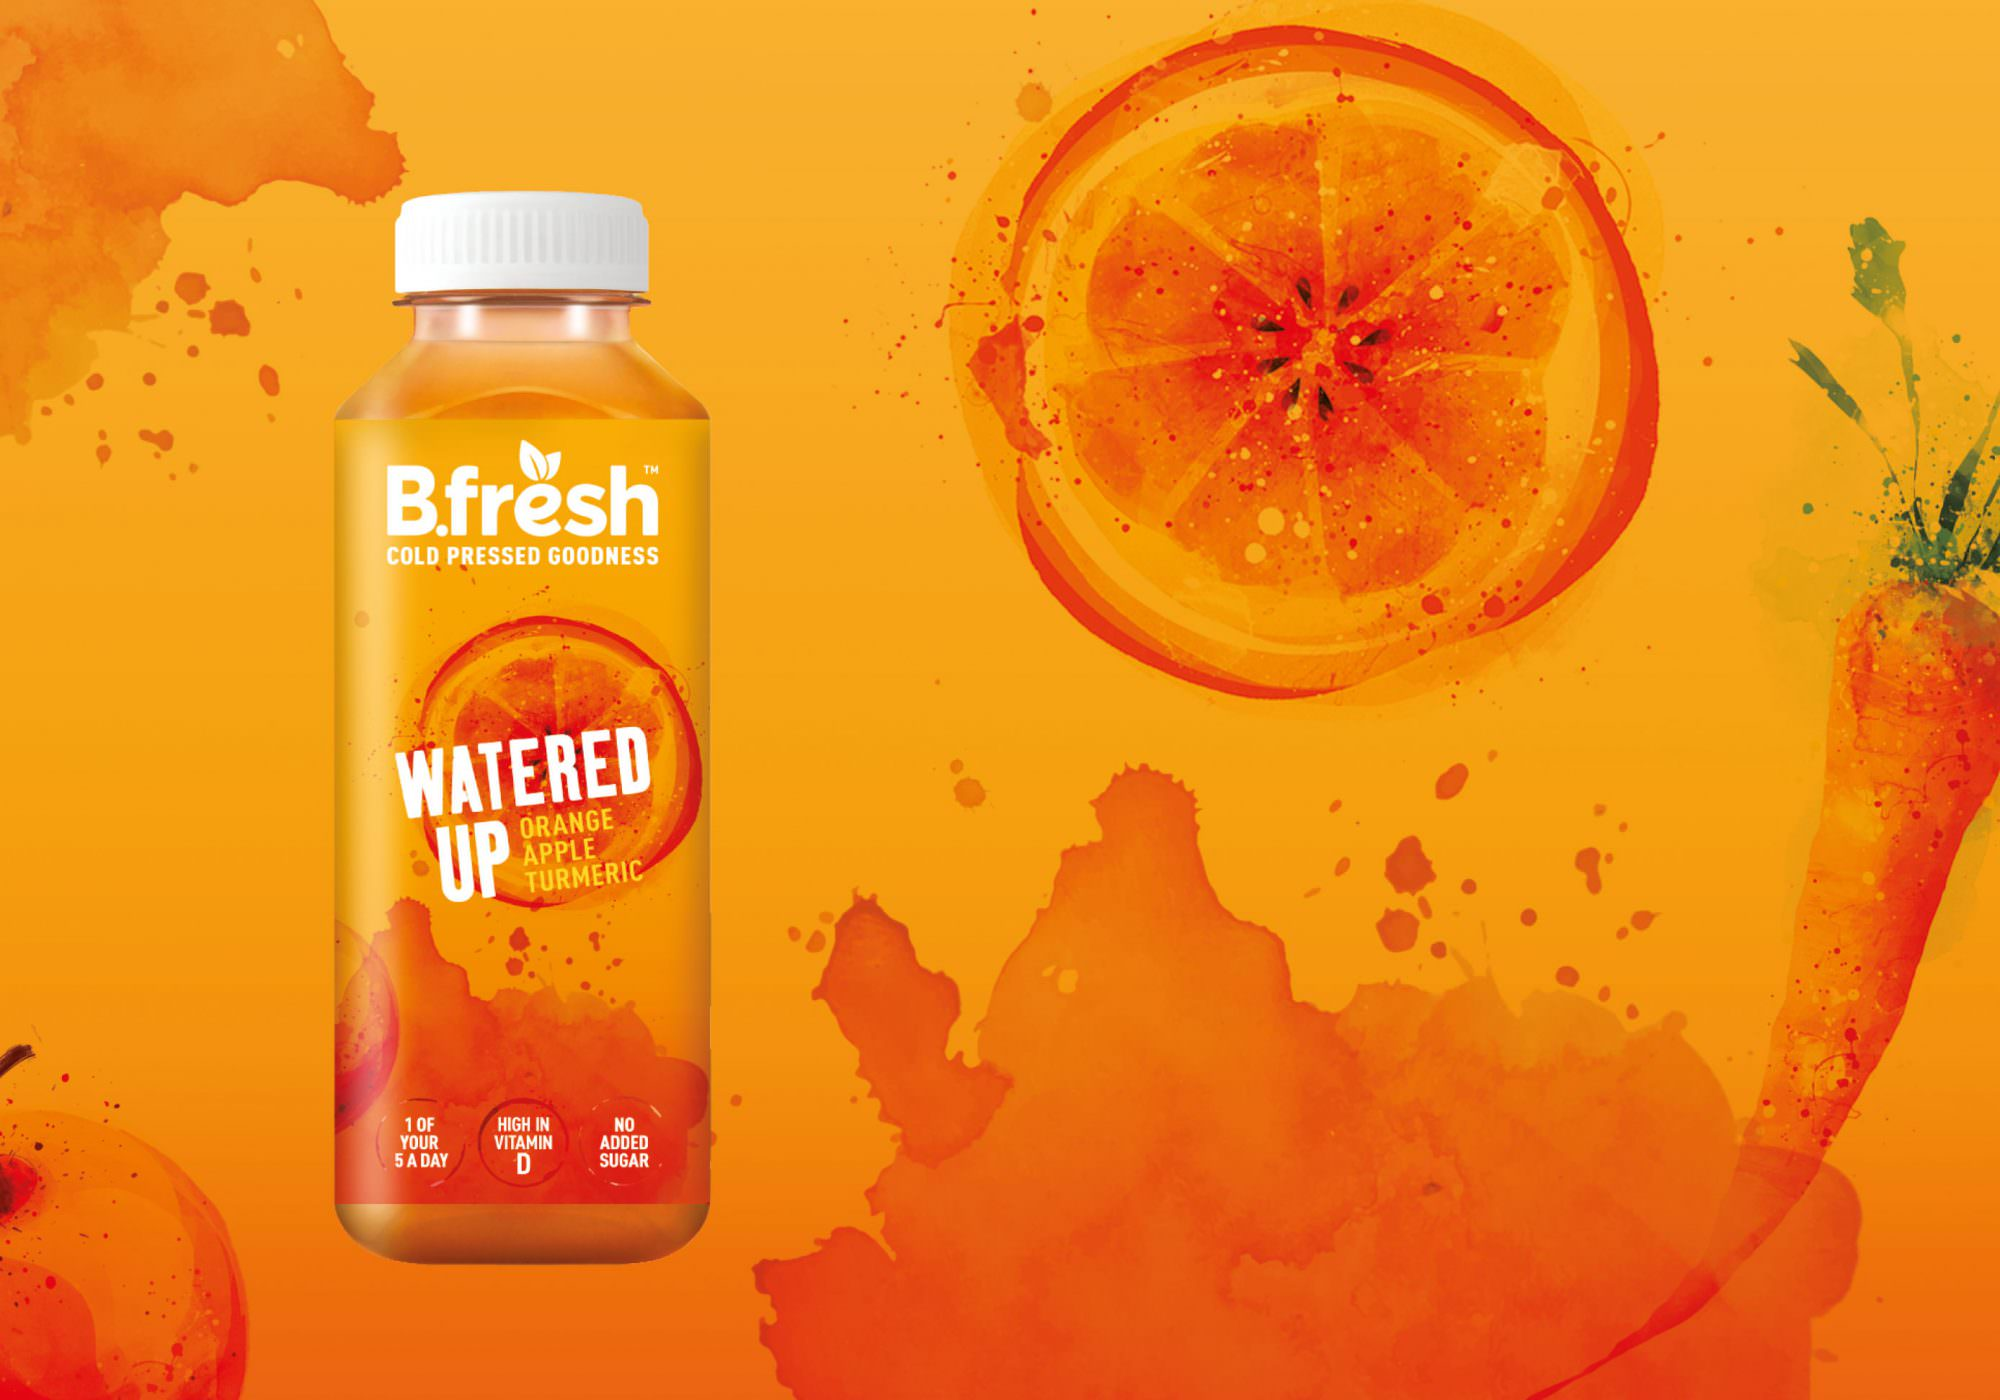 B.fresh – Ecommerce Website & Packaging Design In Shropshire